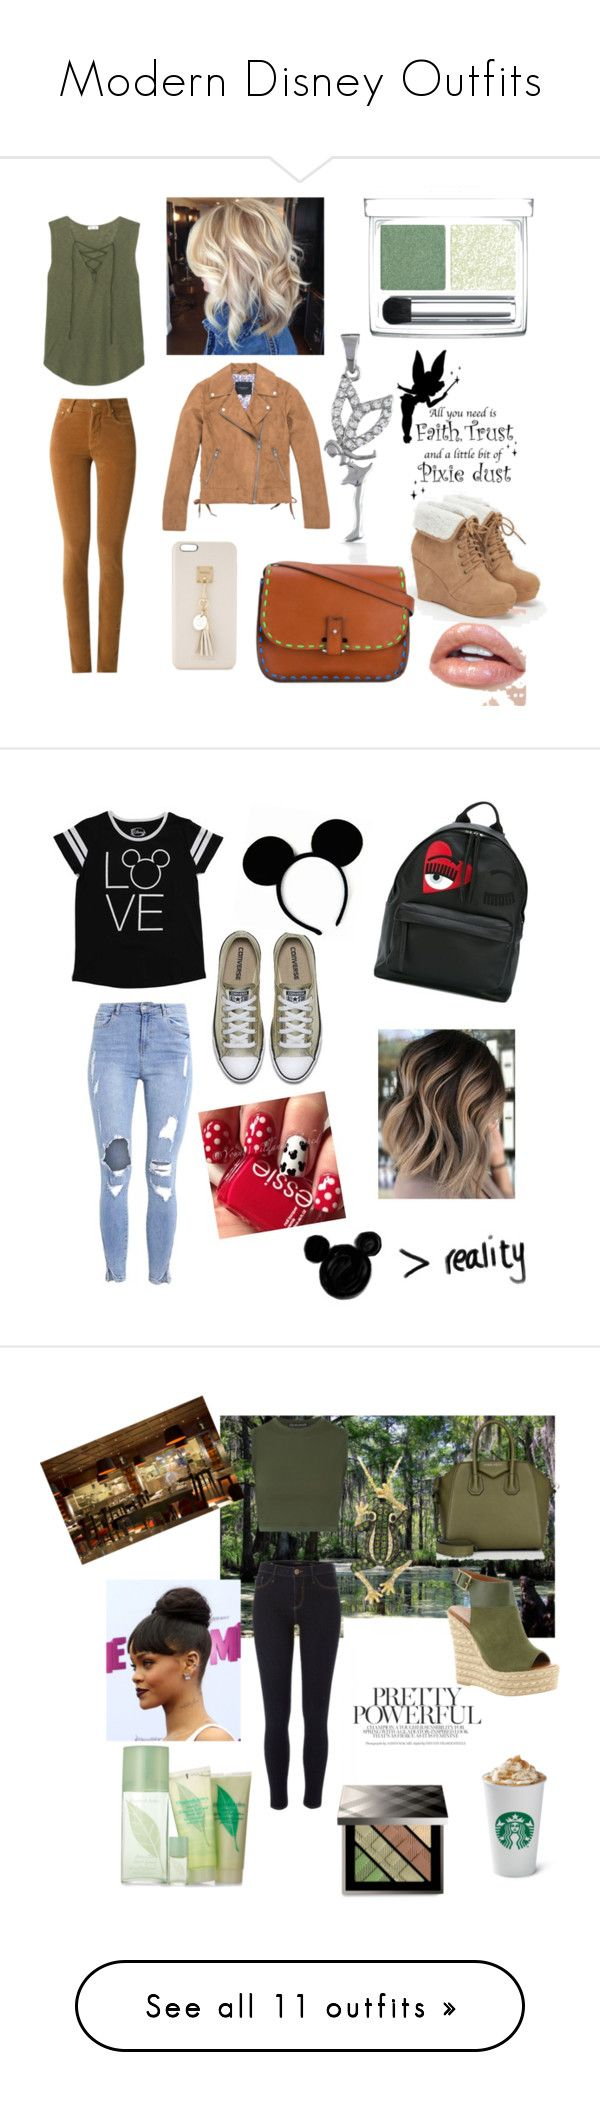 """""""Modern Disney Outfits"""" by gavanloud ❤ liked on Polyvore featuring Amapô, Splendid, RMK, JustFab, Marc New York, laContrie, Bling Jewelry, Iphoria, modern and Chiara Ferragni"""